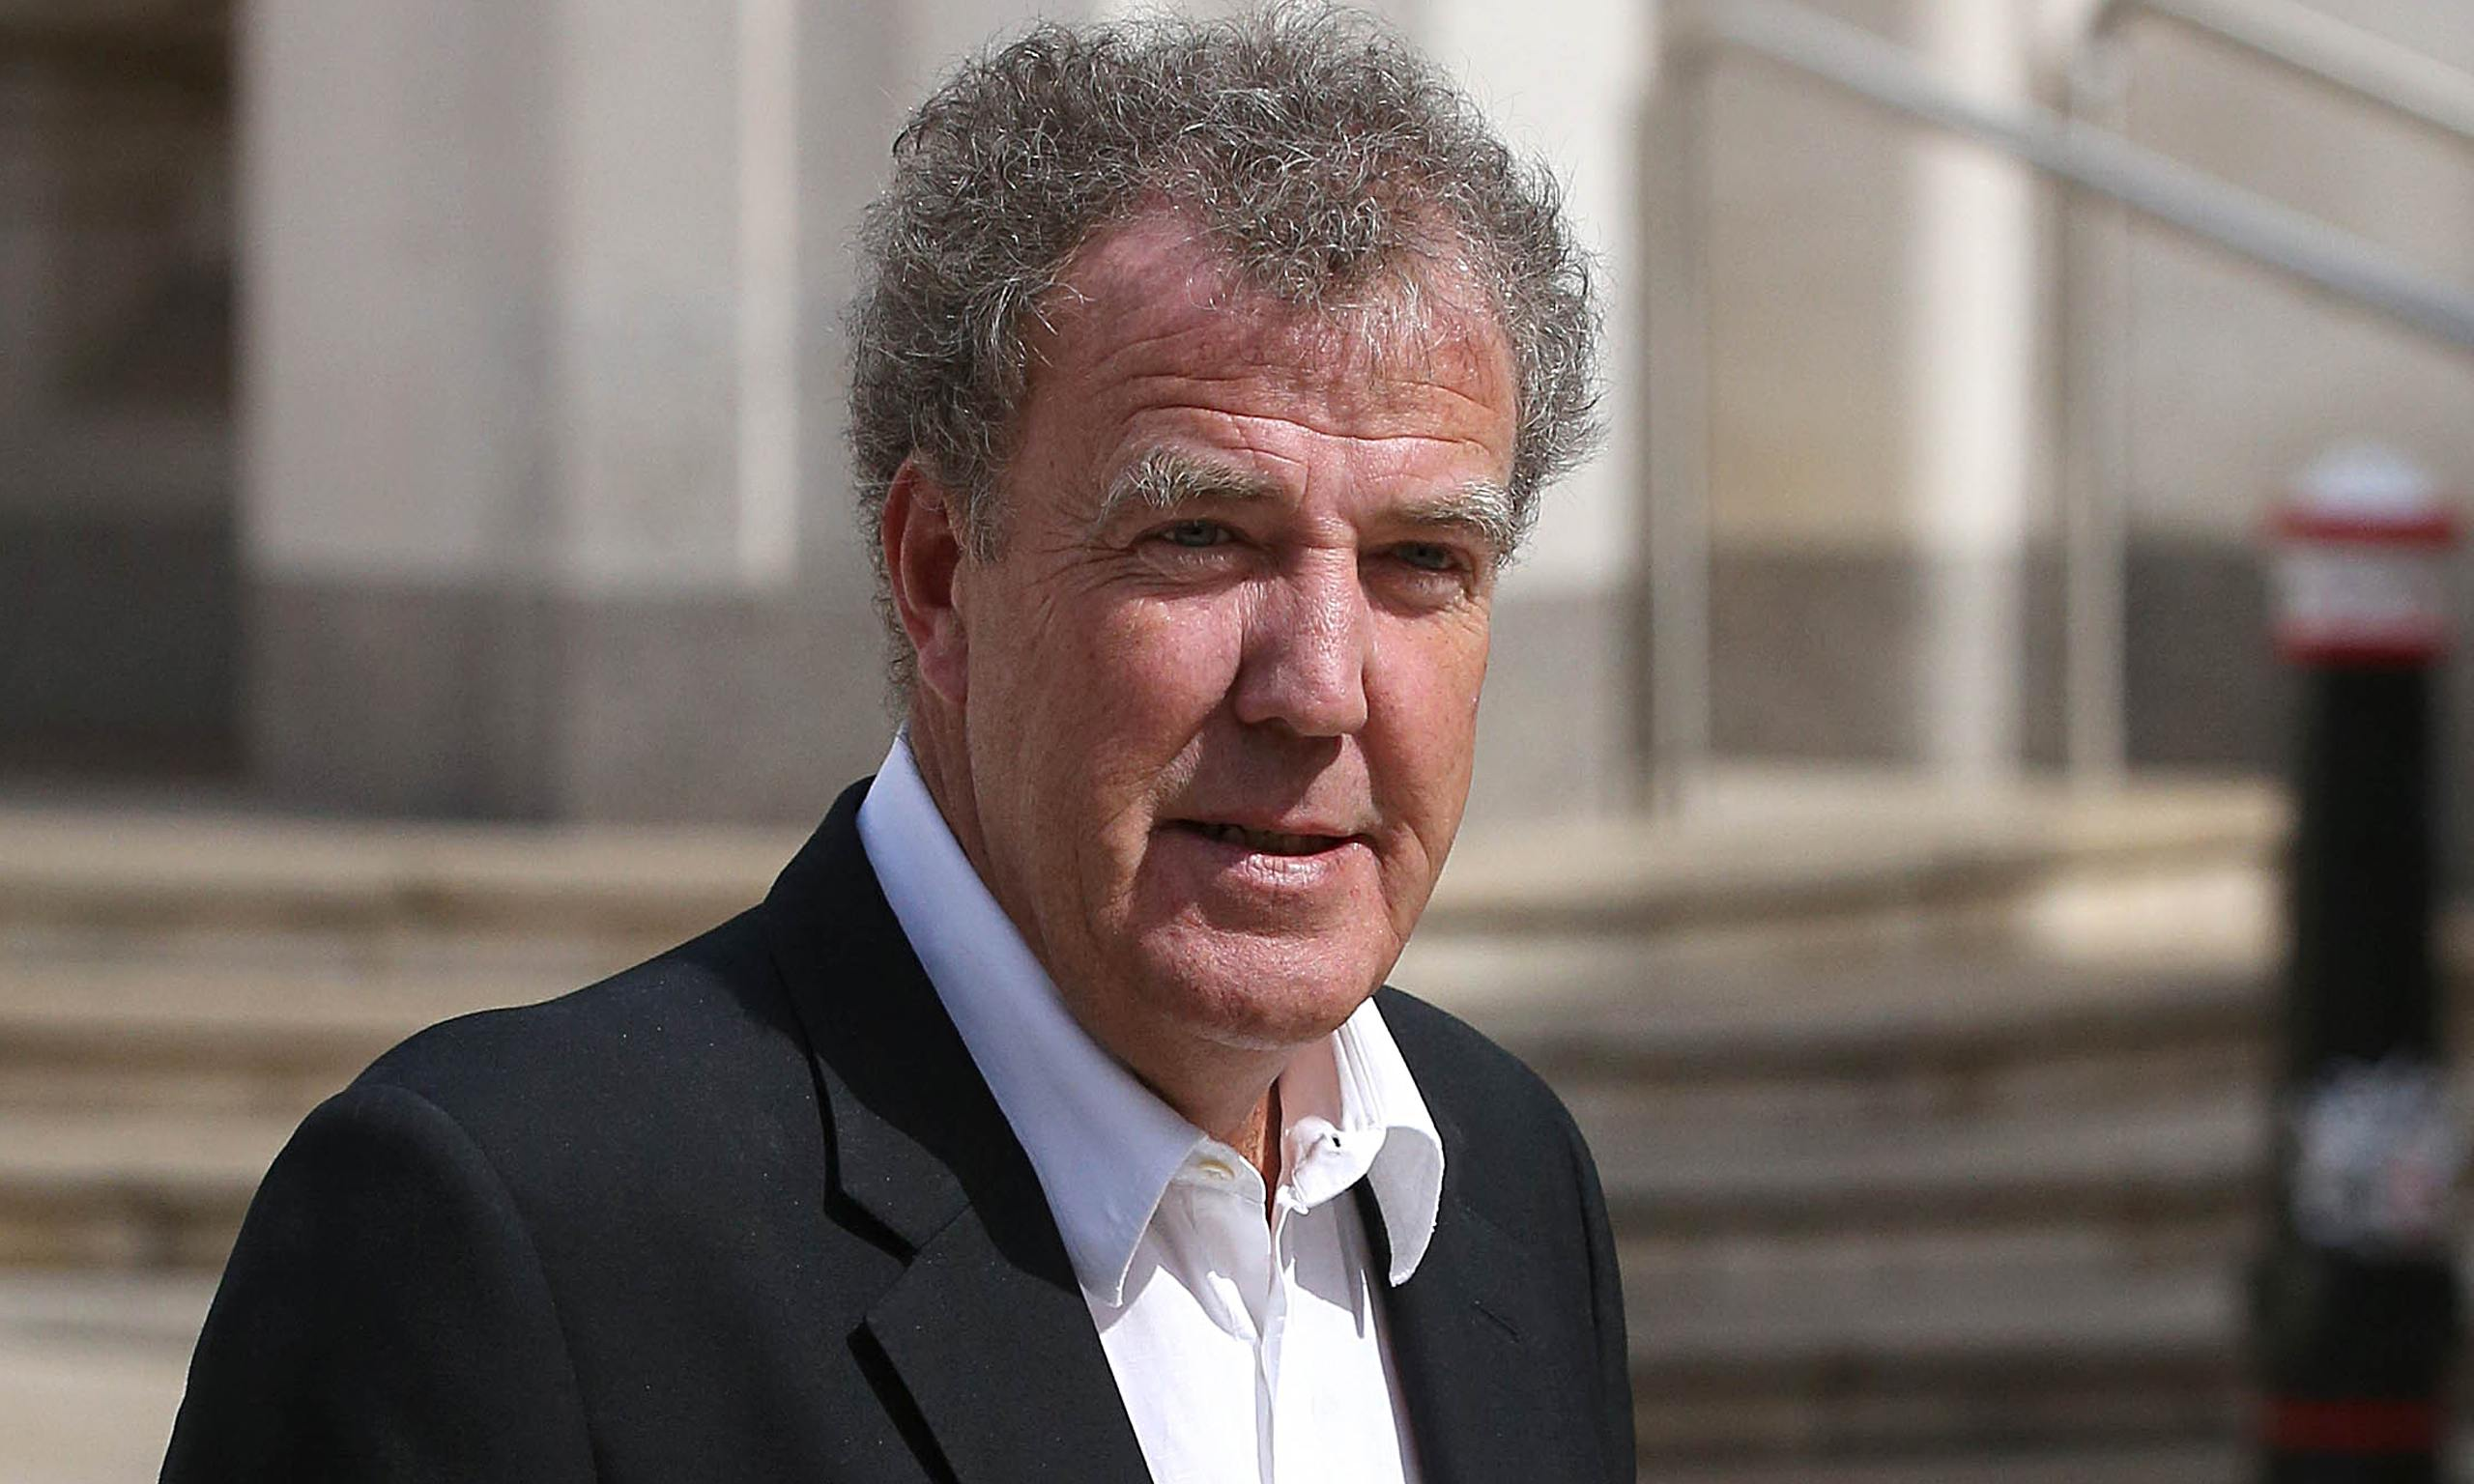 Top Gear Star JEREMY CLARKSON In The News Again, This Time For.